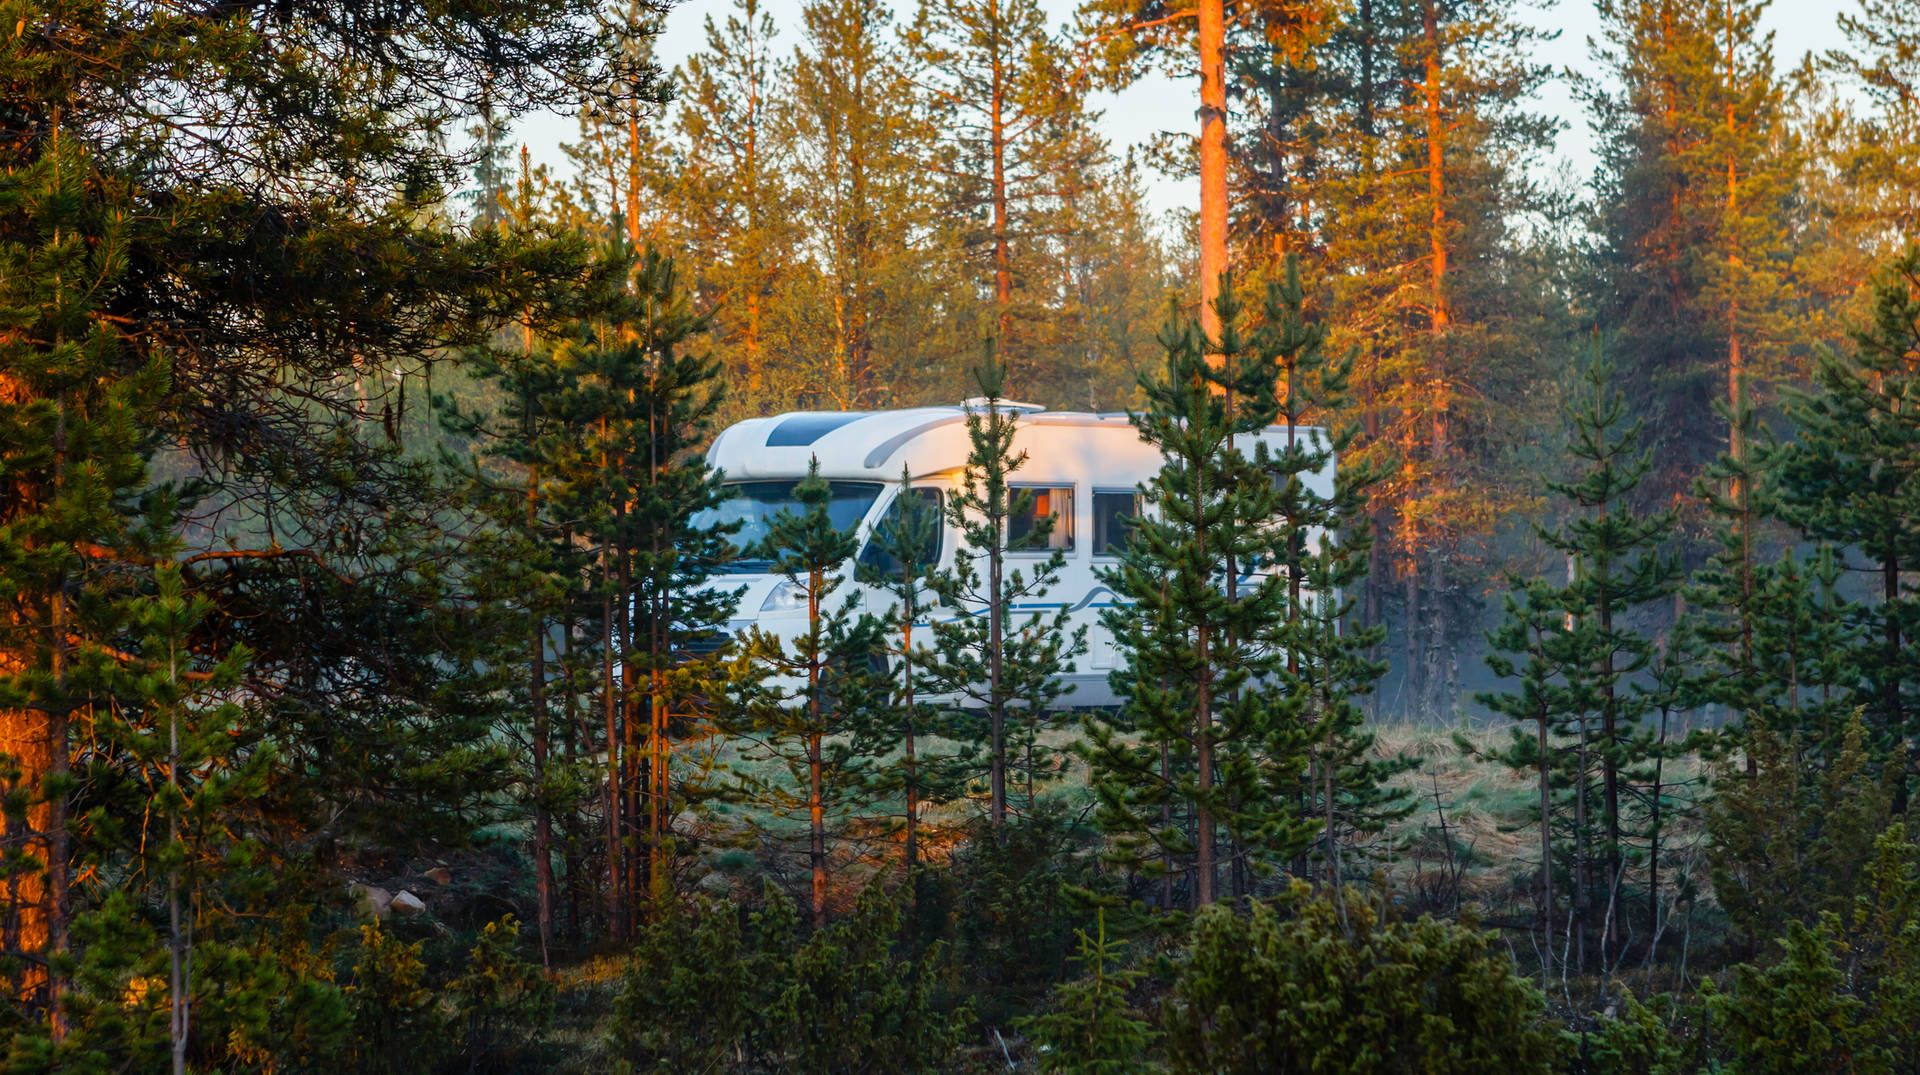 Mike's RV Tips: Holding and Emptying Your RV Black Water Tank